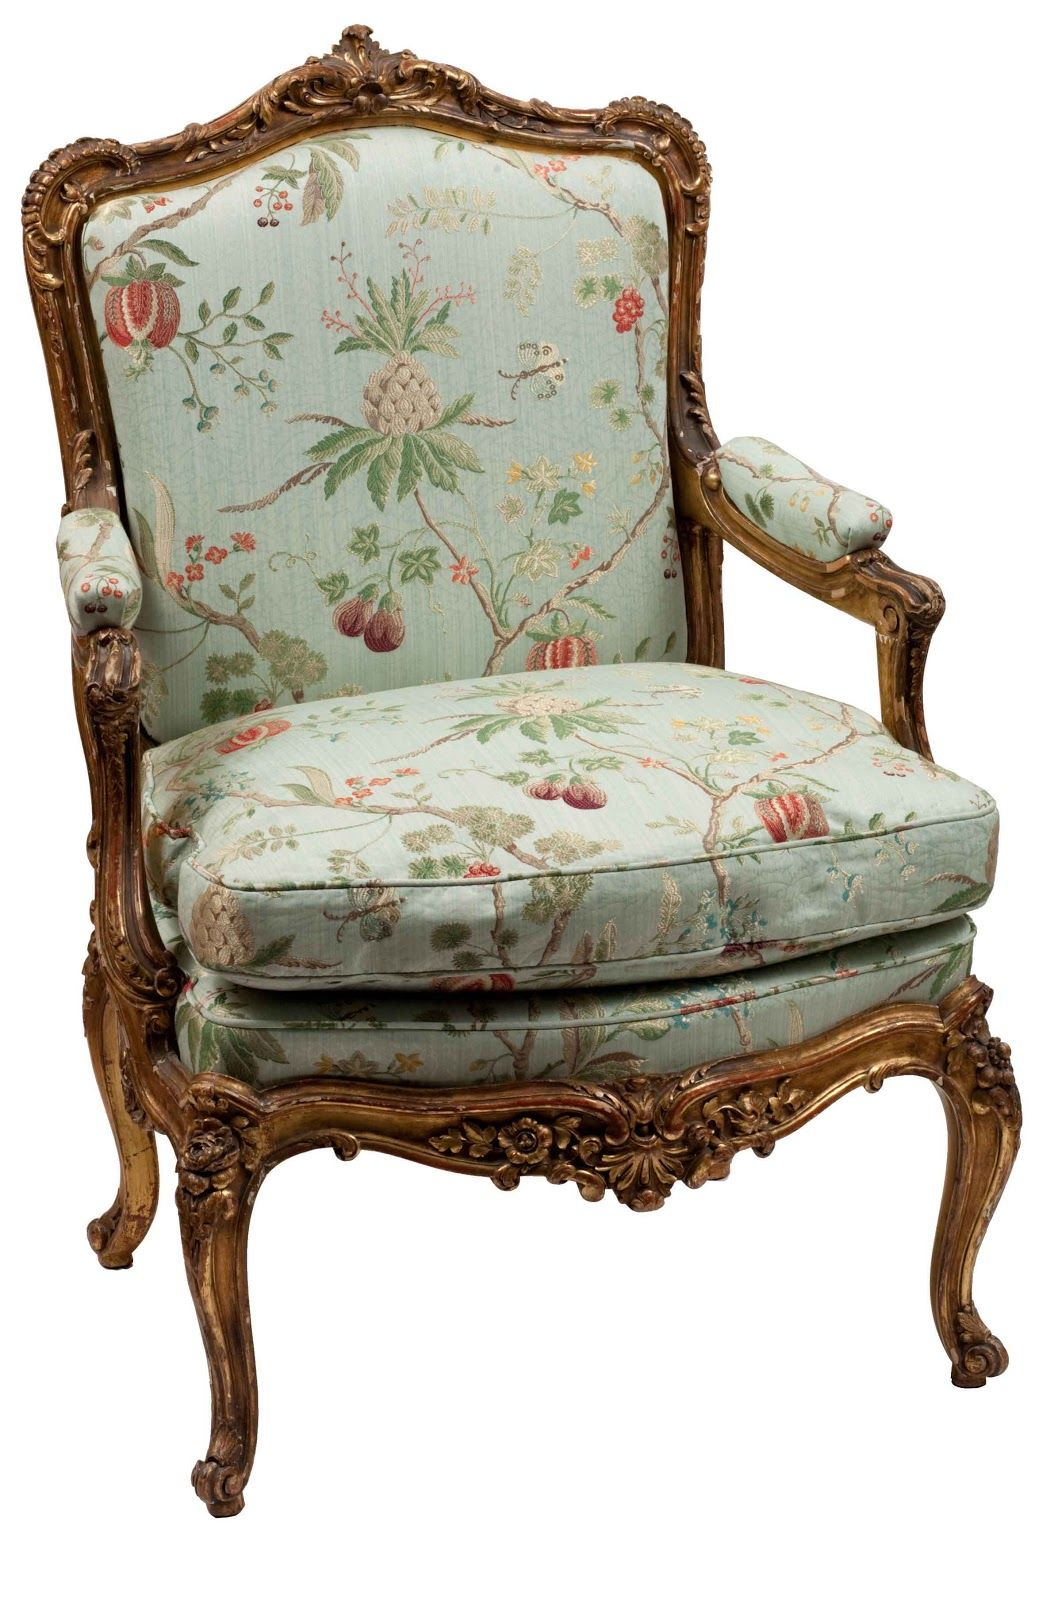 incredible antique sofa styles picture-Luxury Antique sofa Styles Gallery